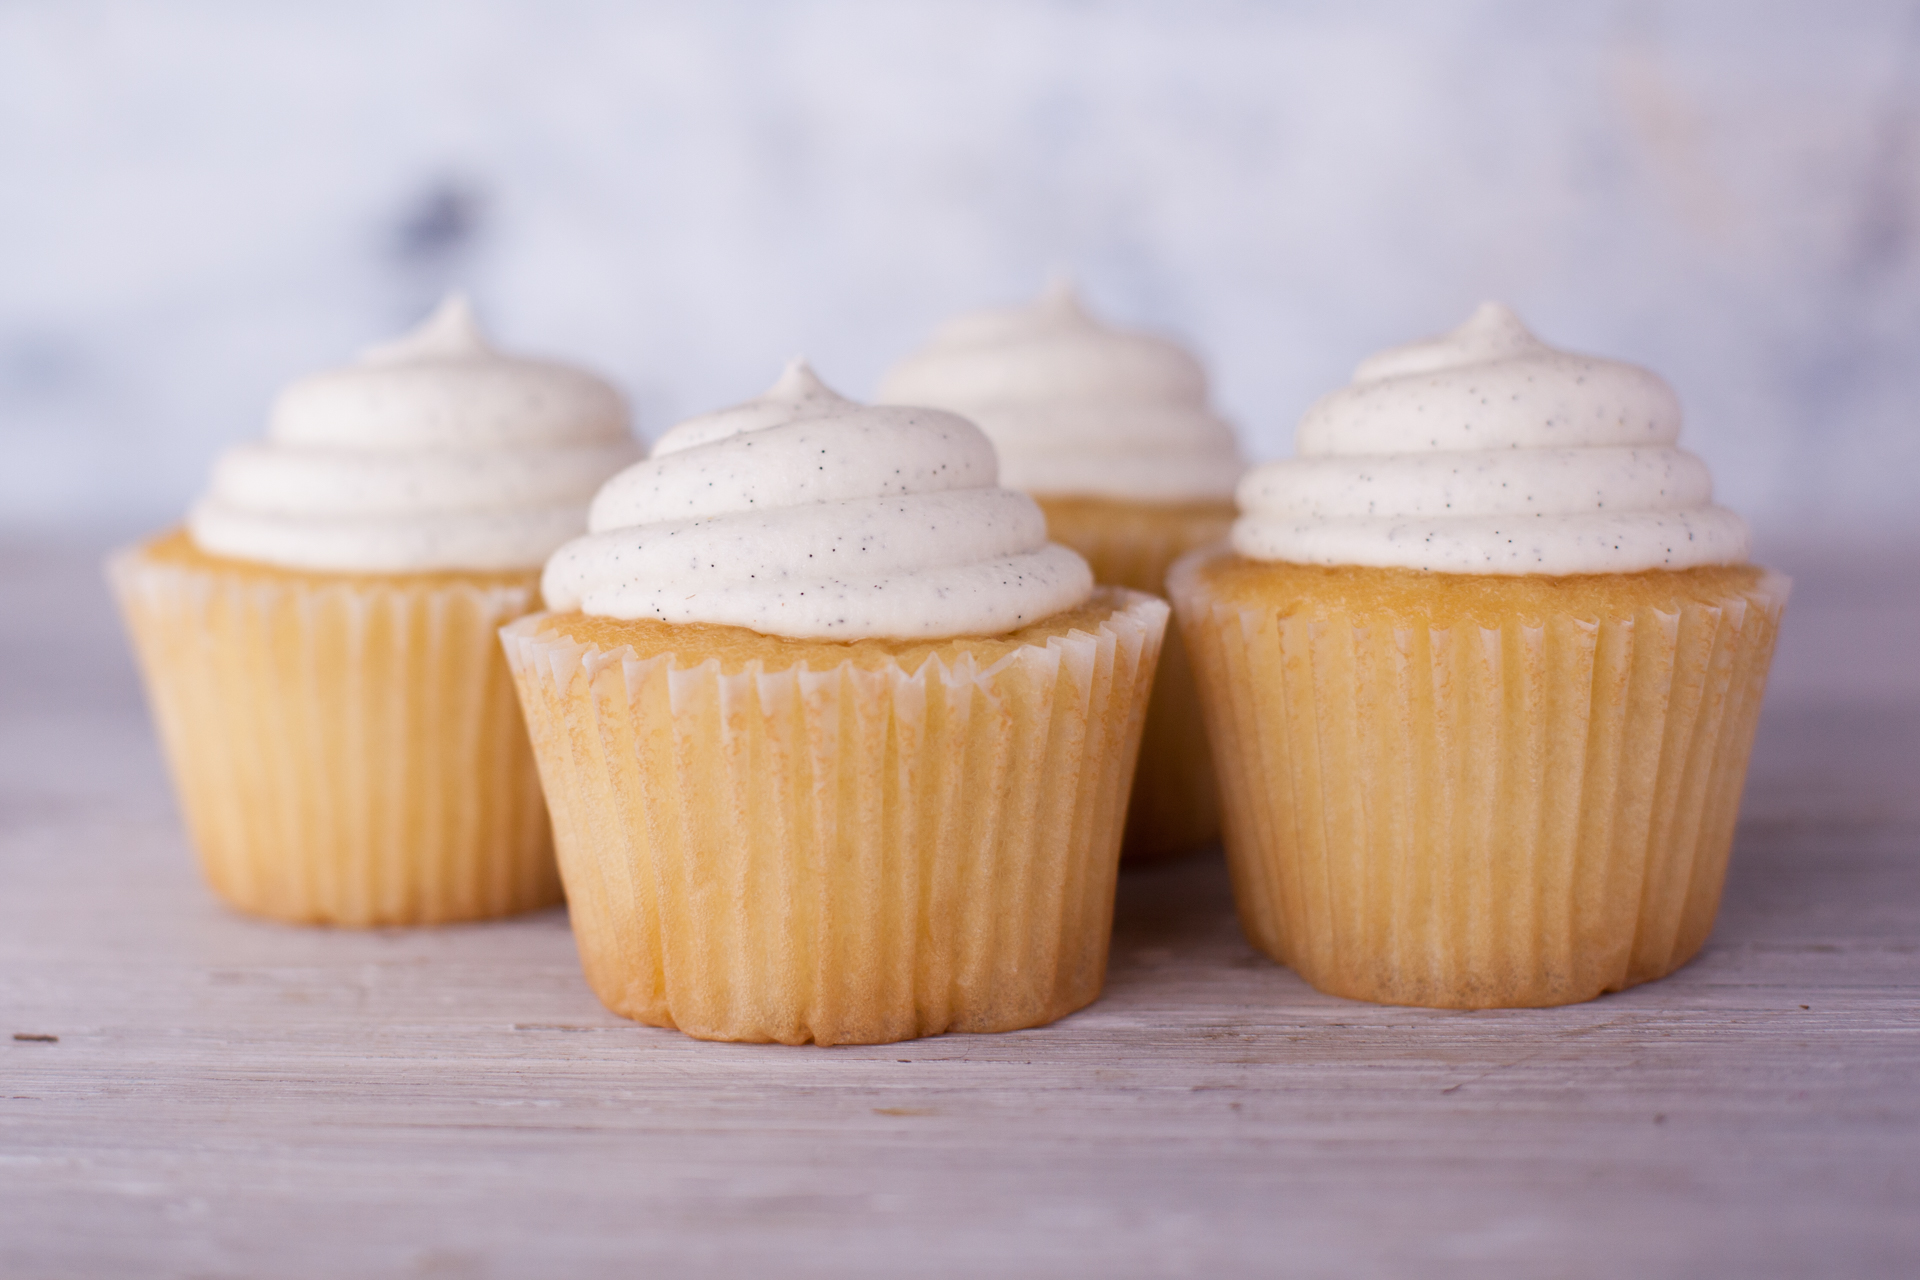 Vanilla  Buttercream Frosting (From Sprinkles Cupcakes) Recipe